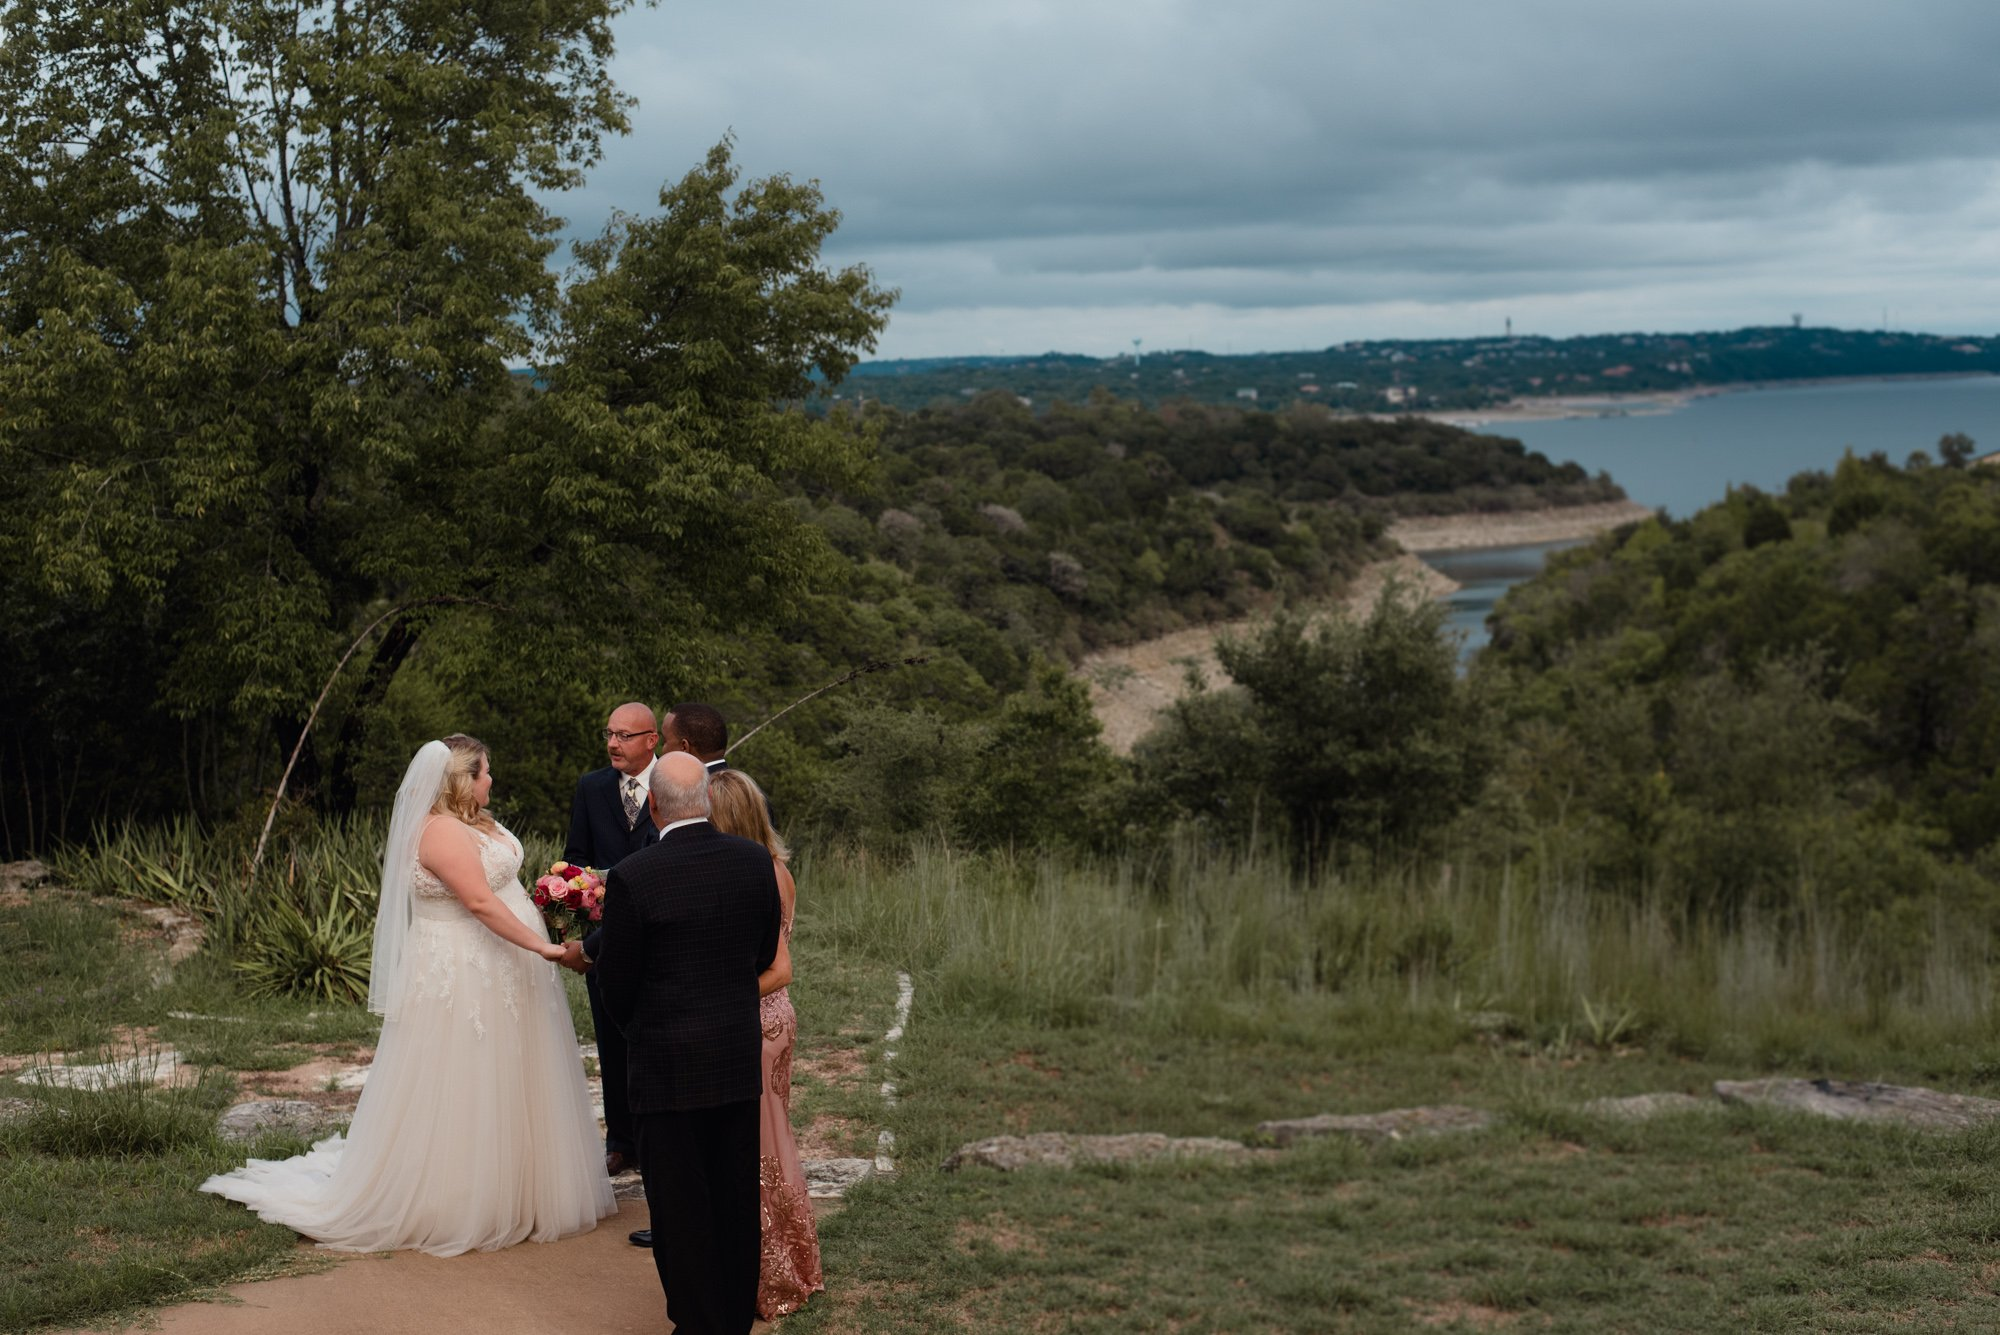 small lake house wedding austin texas, lake travis wedding photos, private elopement austin